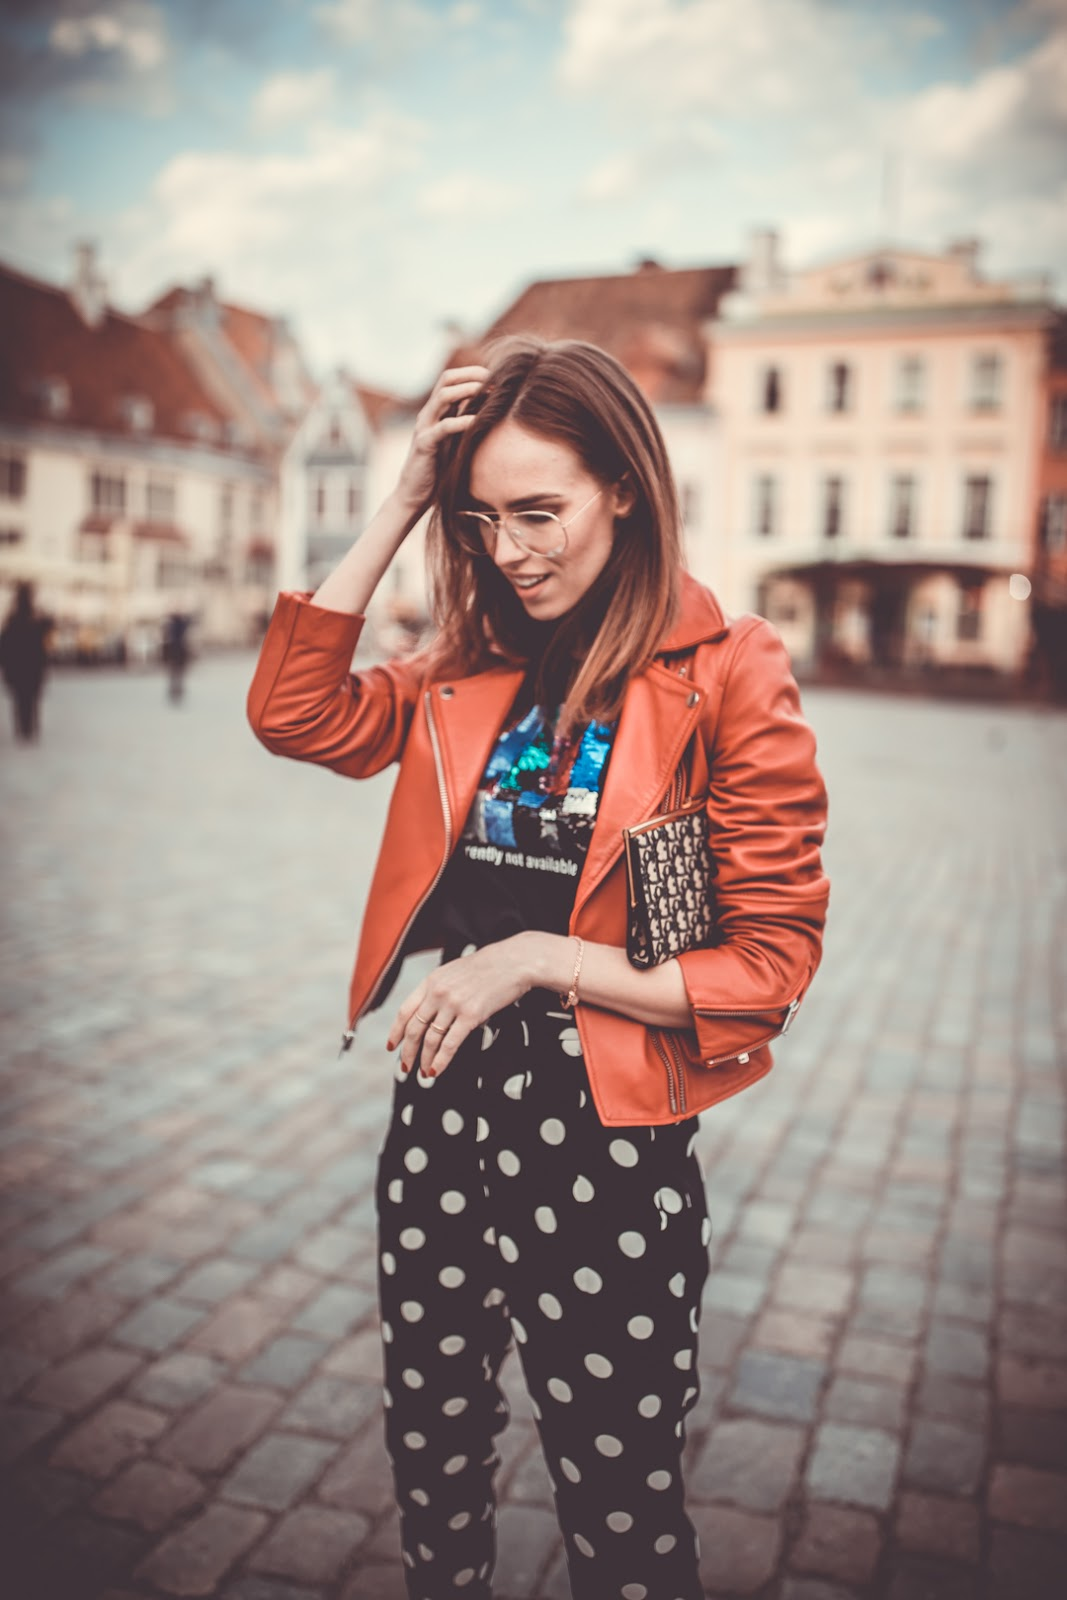 dior vintage clutch spring casual outfit street style